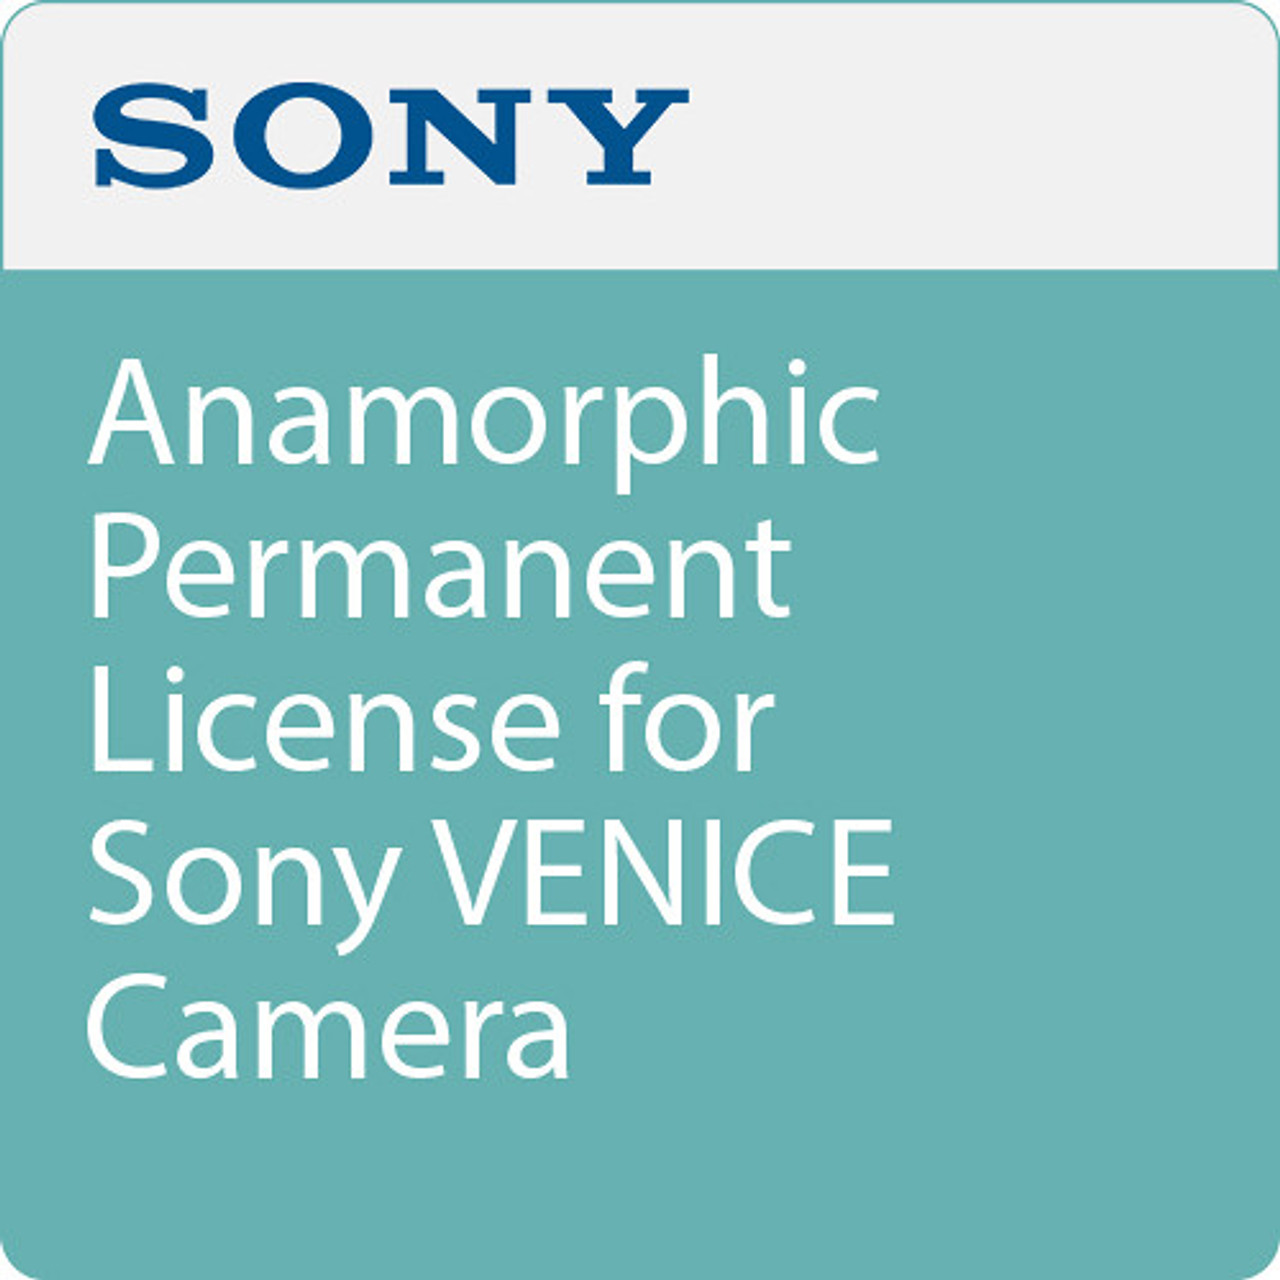 Sony CBKZ-3610A Anamorphic Software License for VENICE